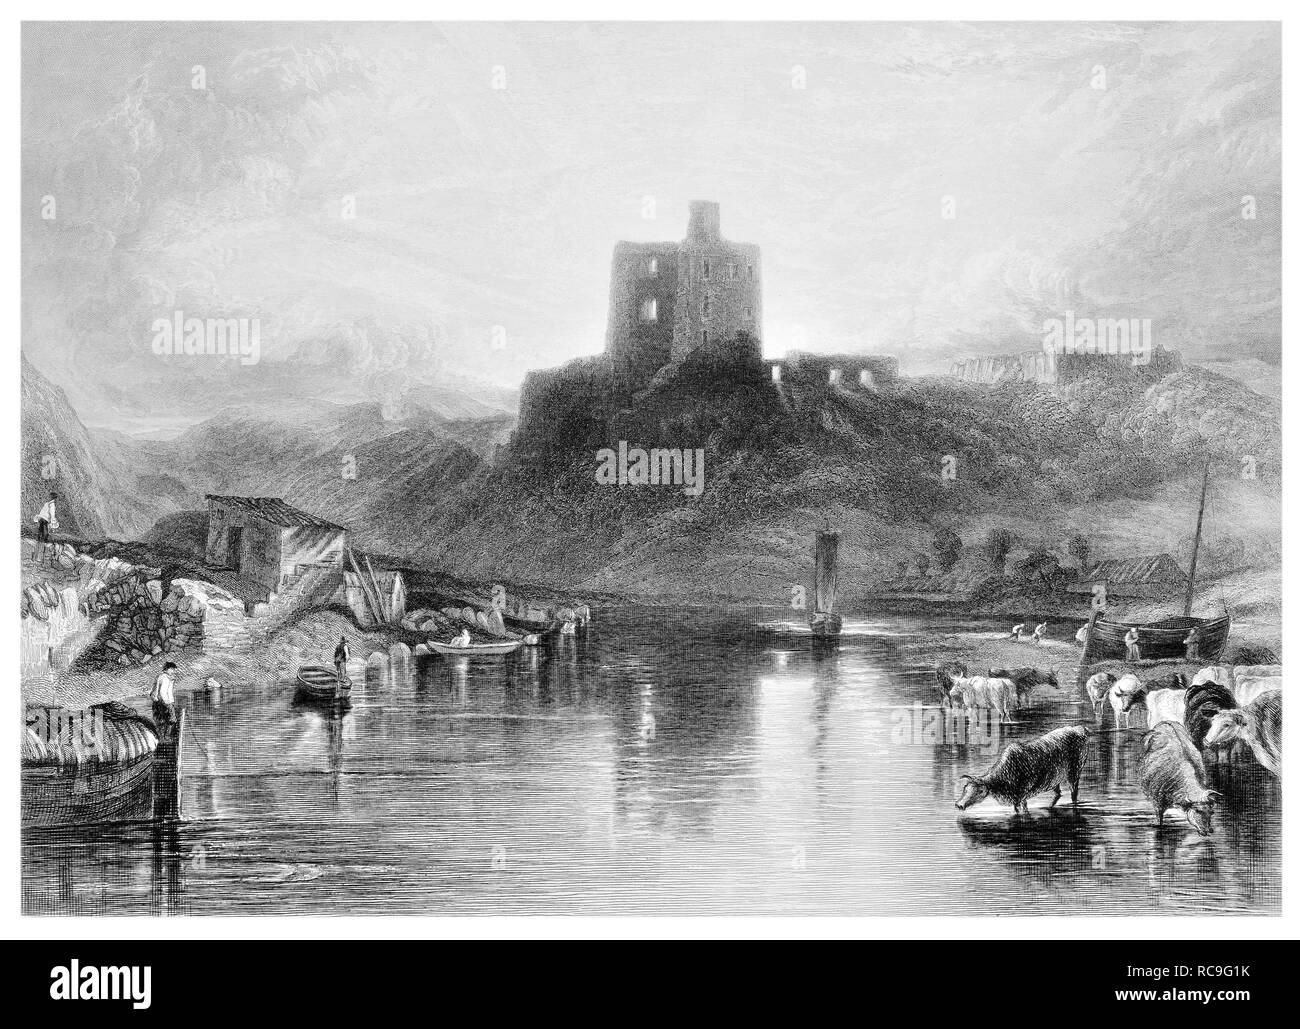 J.M.W Turner Norham Castle engraved by W. Chapman - Stock Image